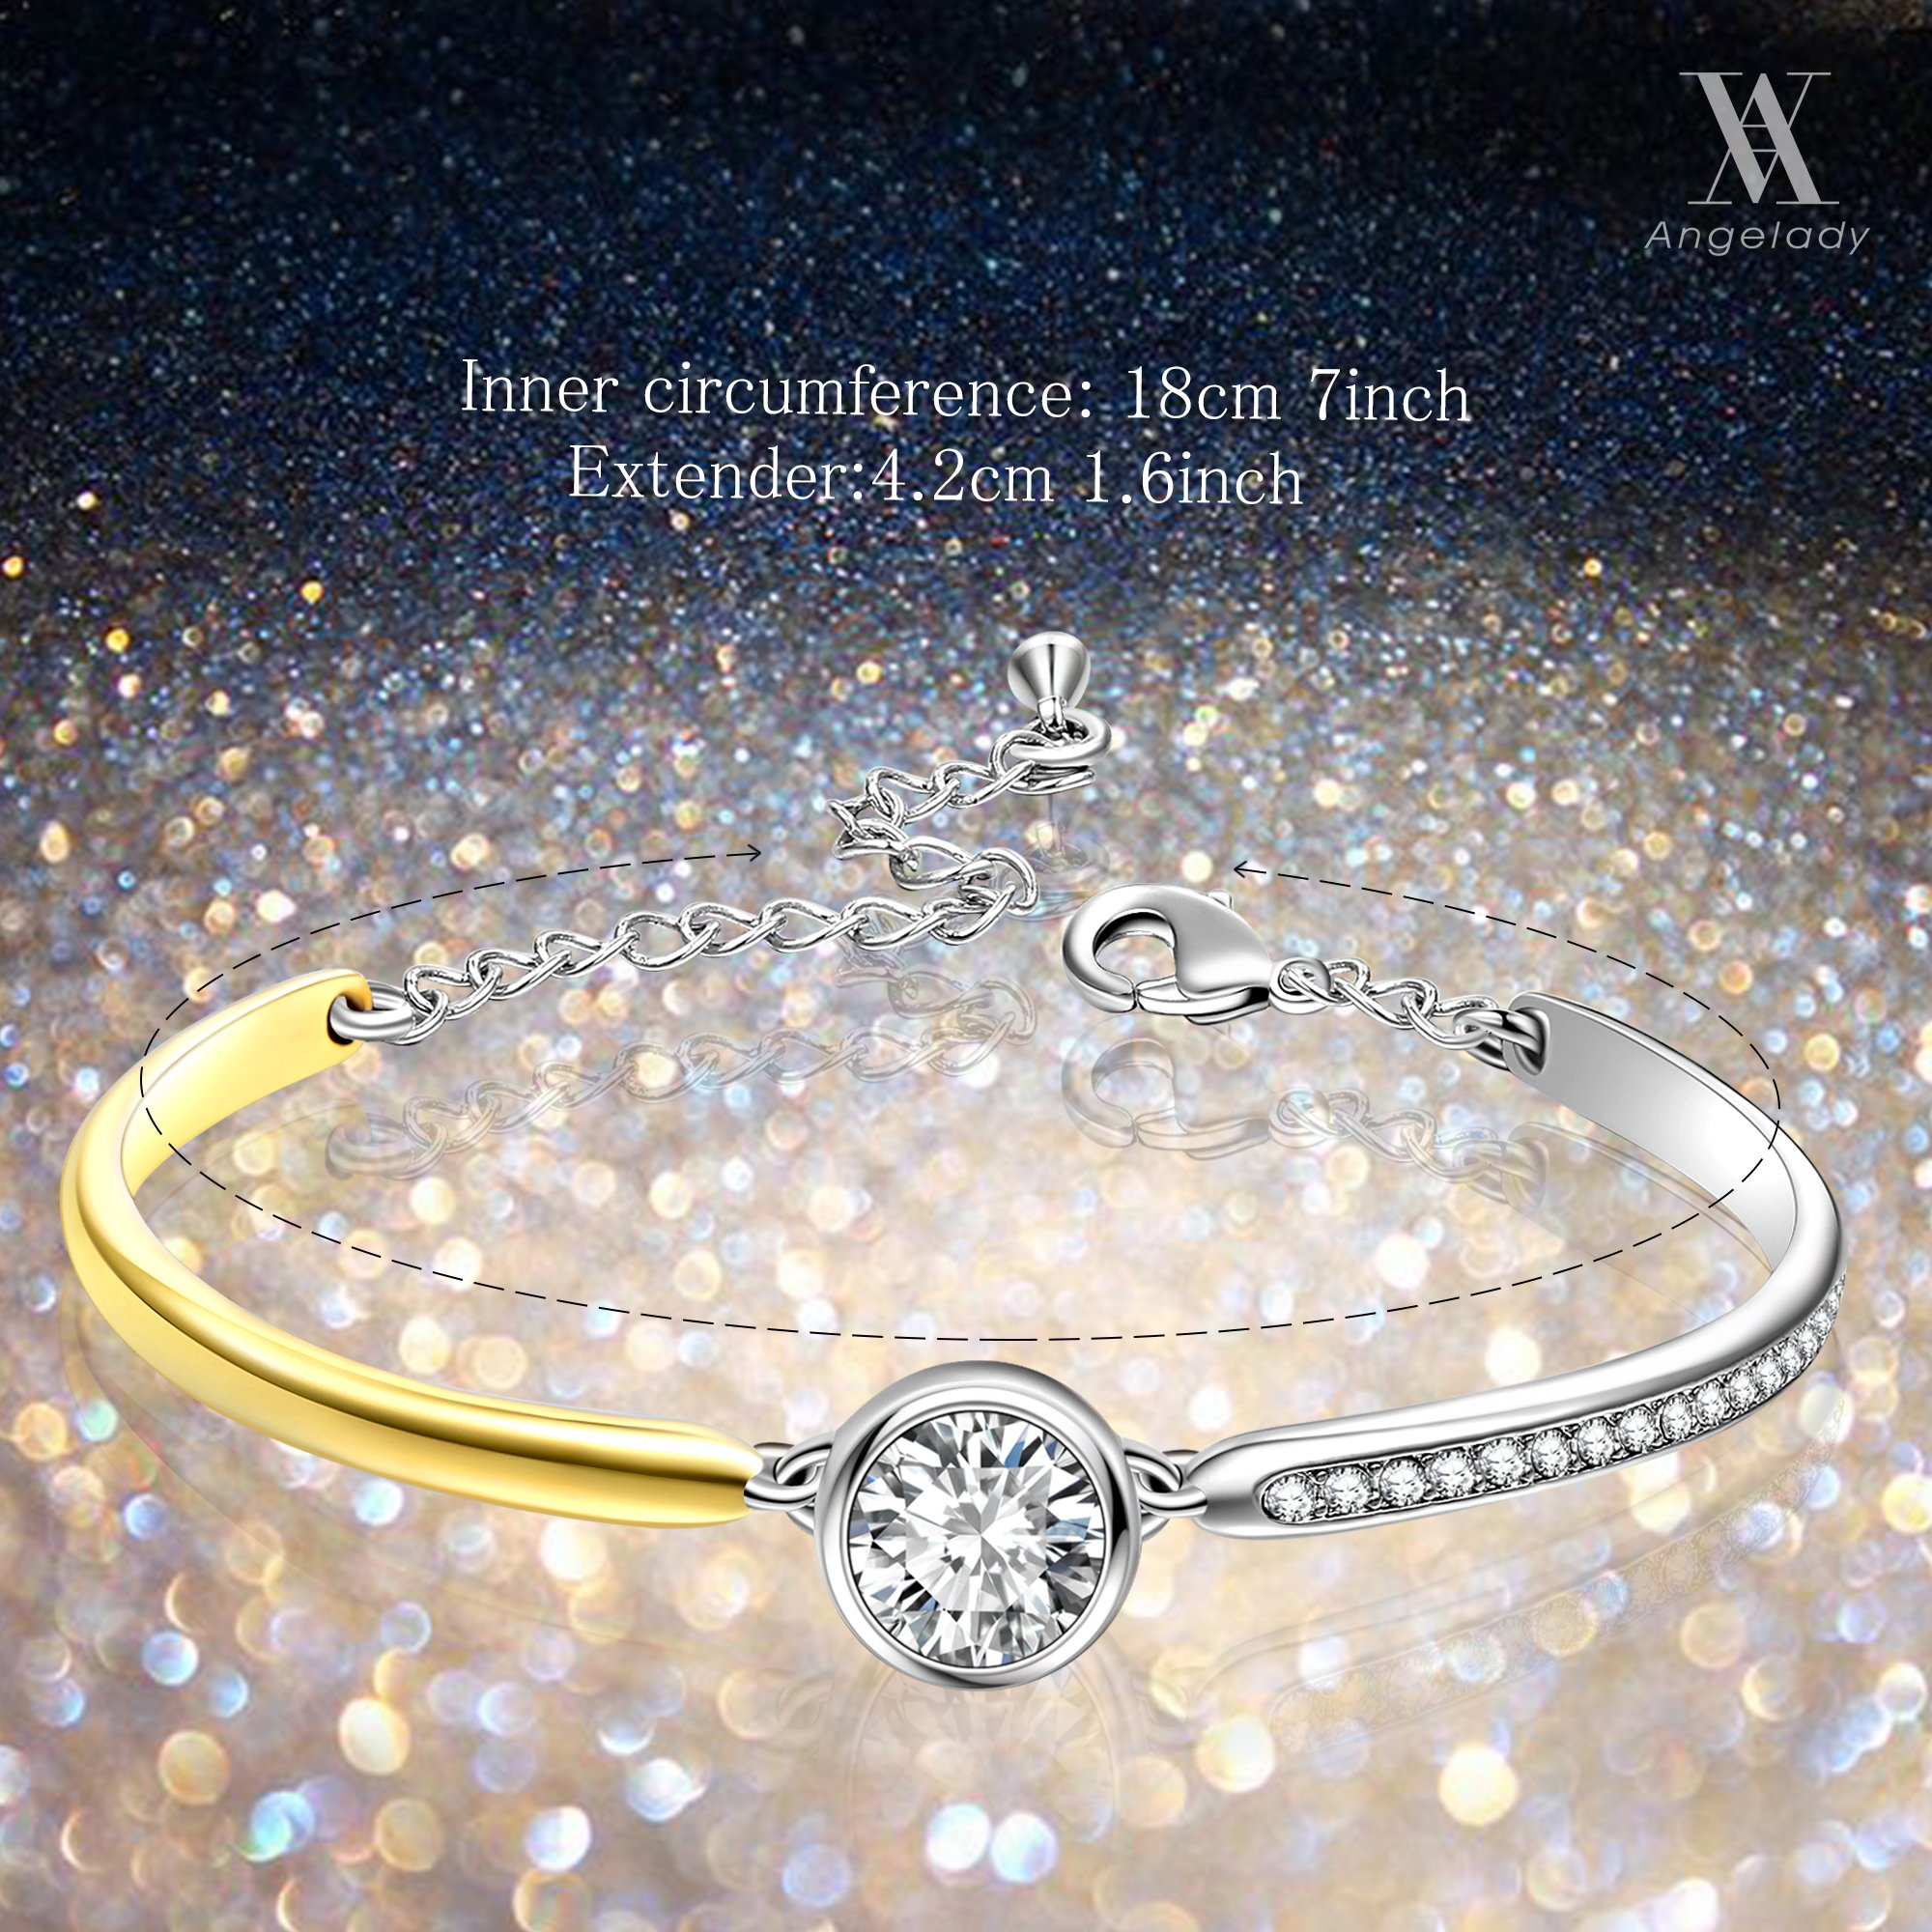 14K Gold Plated Encounter Bangle Bracelet Jewelry Gift for Birthday Anniversary, Crystal from Swarovski 7\